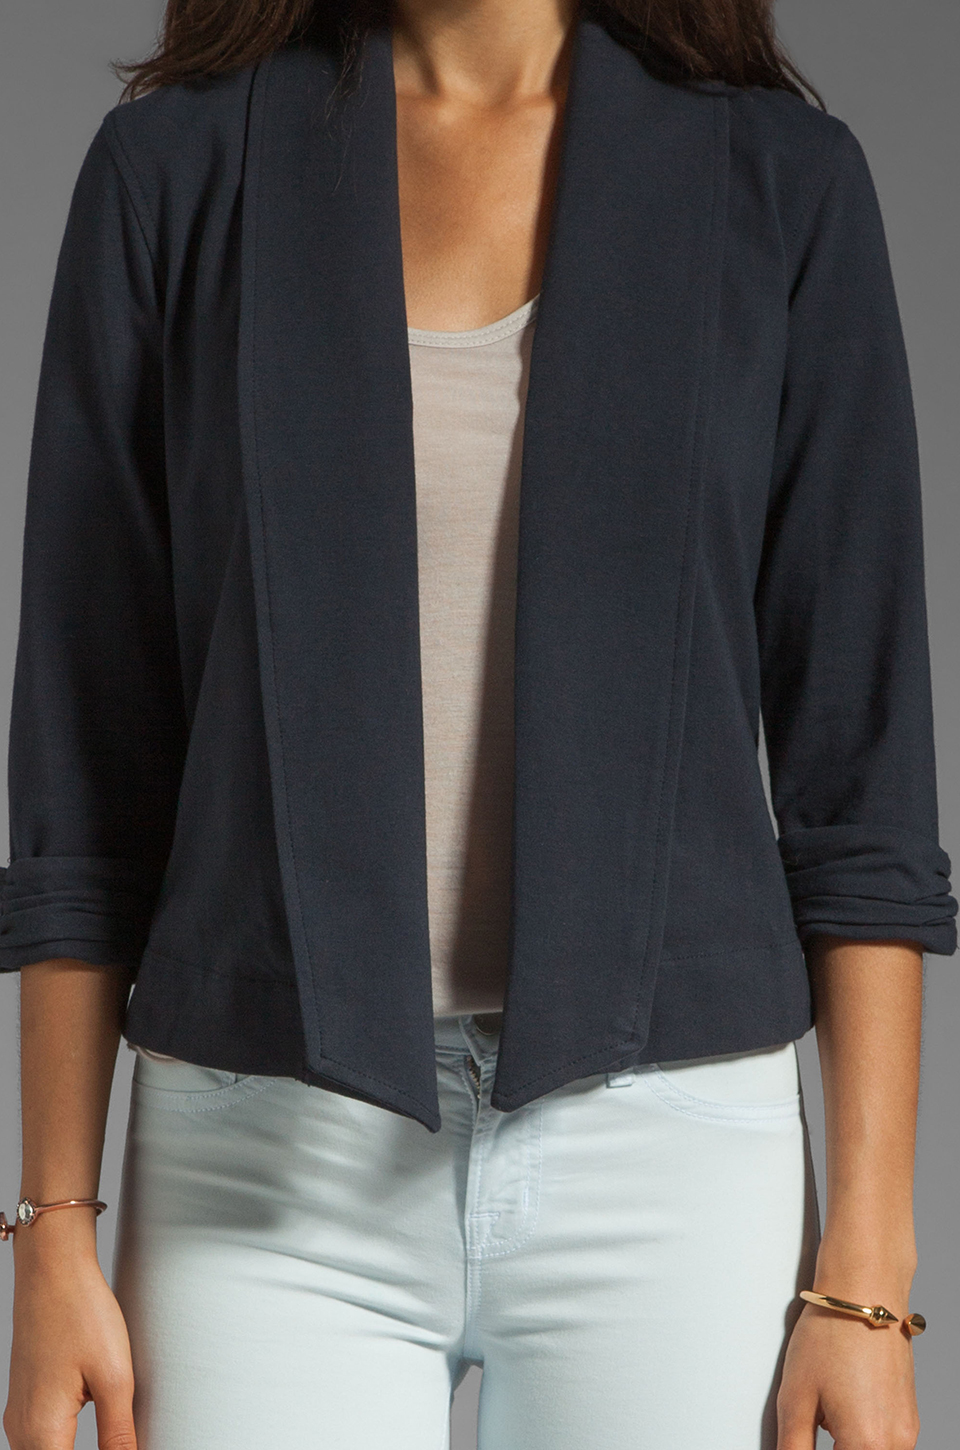 Theory Ode Ashbey B Jersey Blazer in Navy